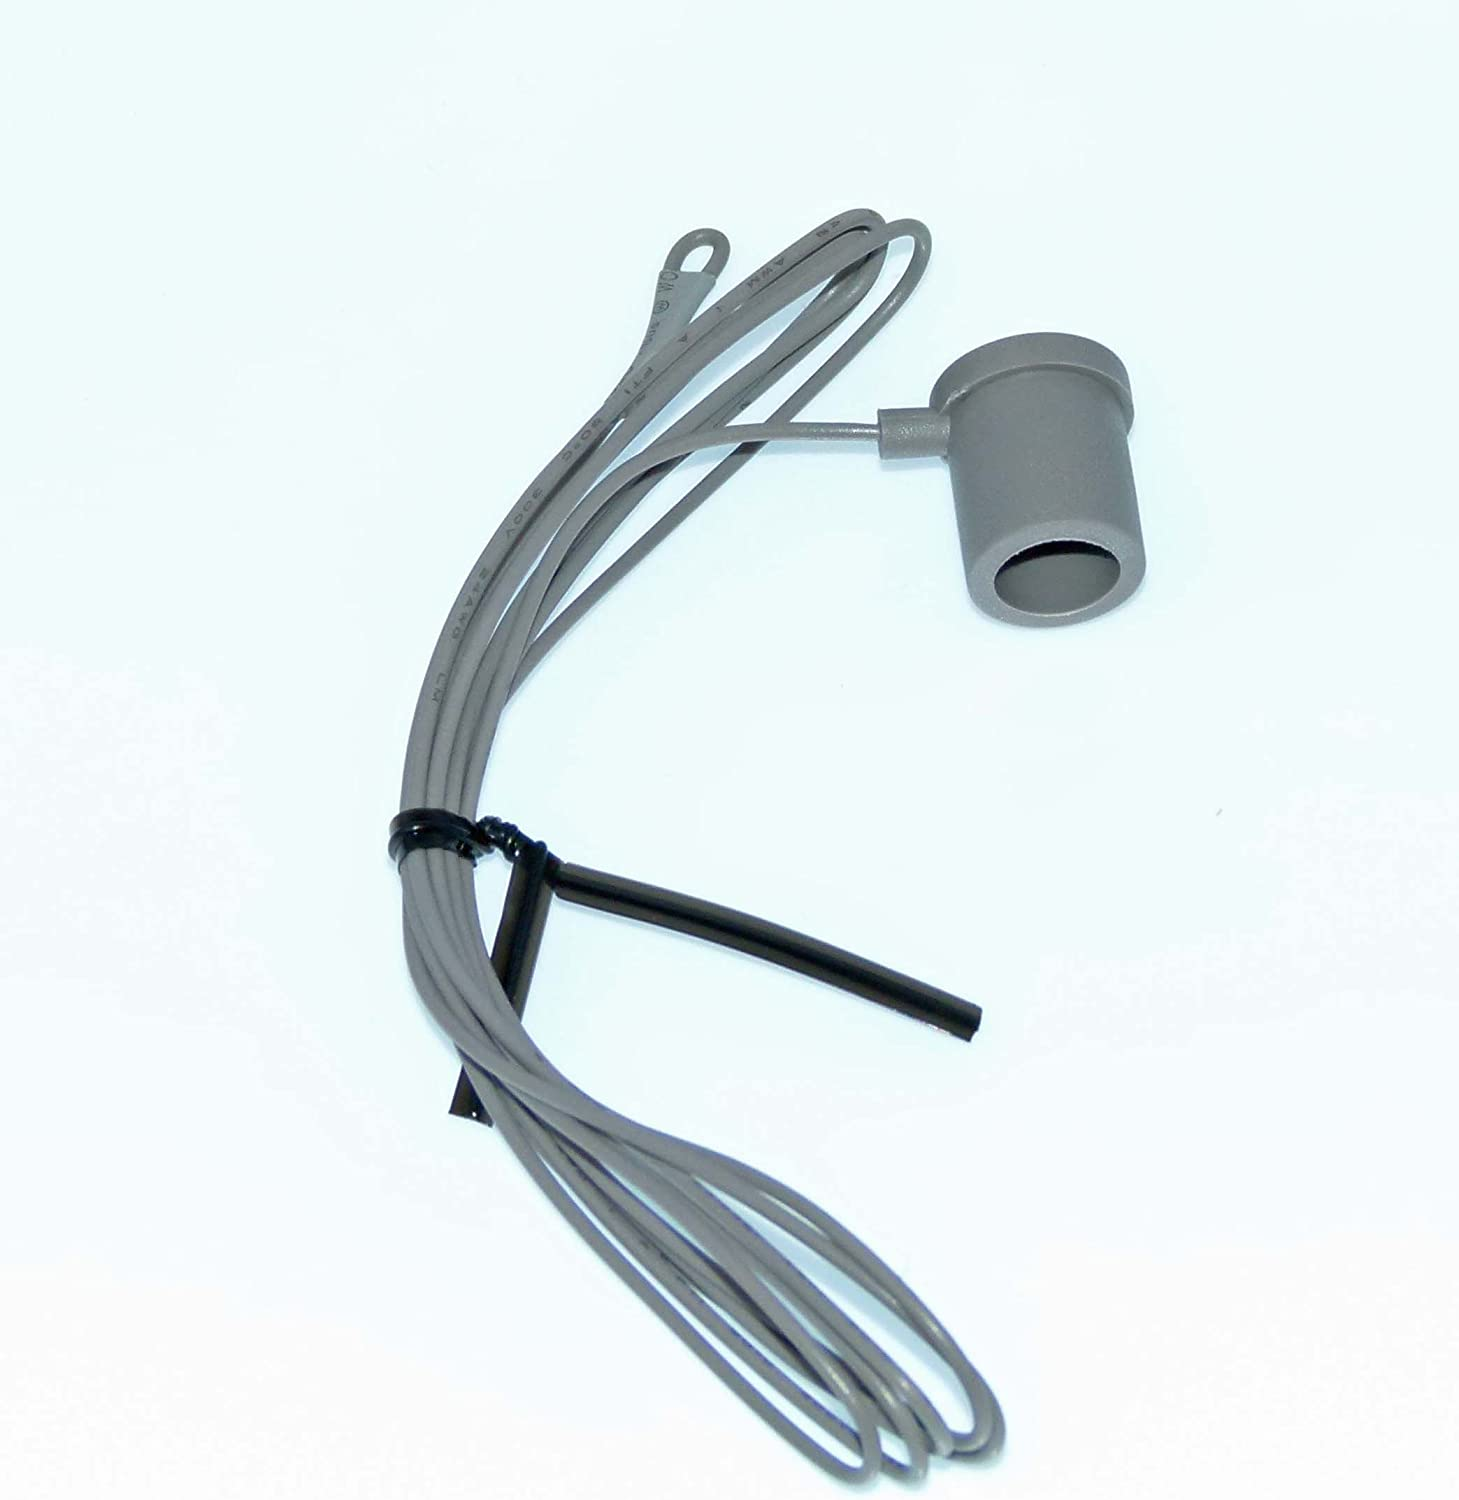 OEM Yamaha FM Antenna Originally Shipped with: RS300 R-S500BL R-S500 RS500BL R-S300 RS500